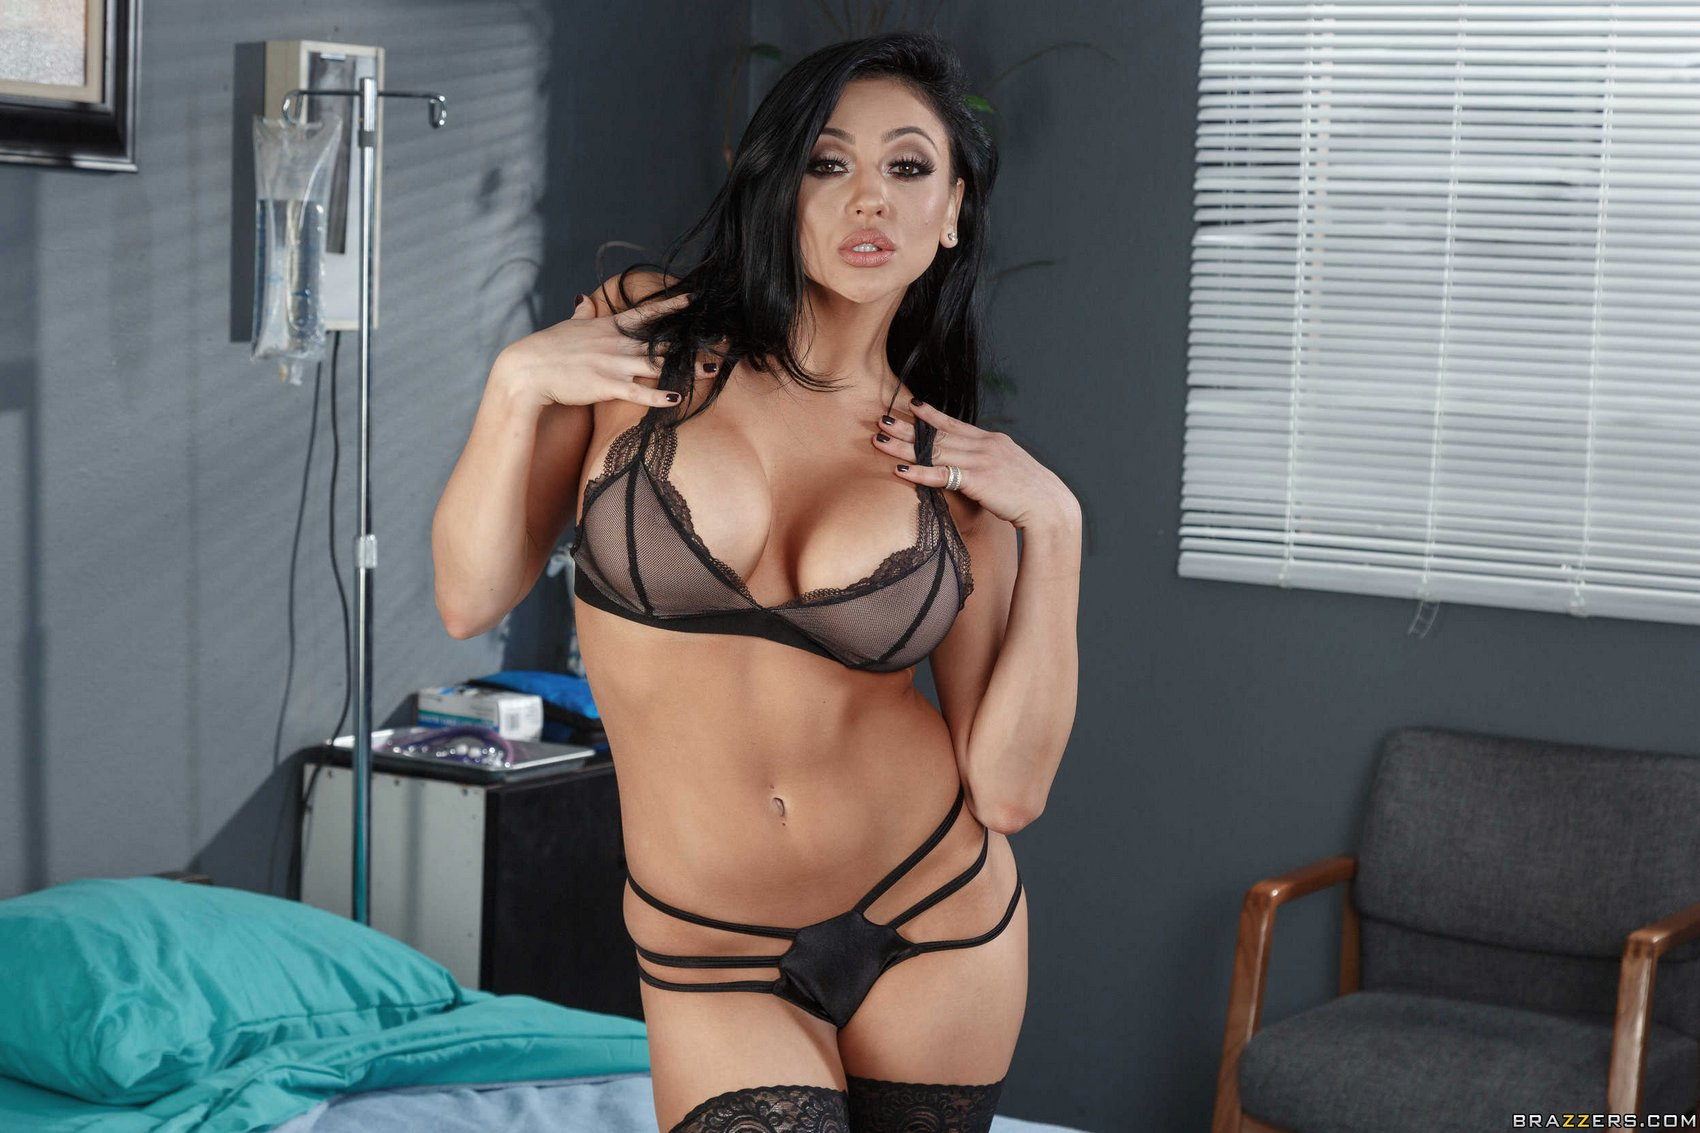 from Travis hot audrey bitoni toples